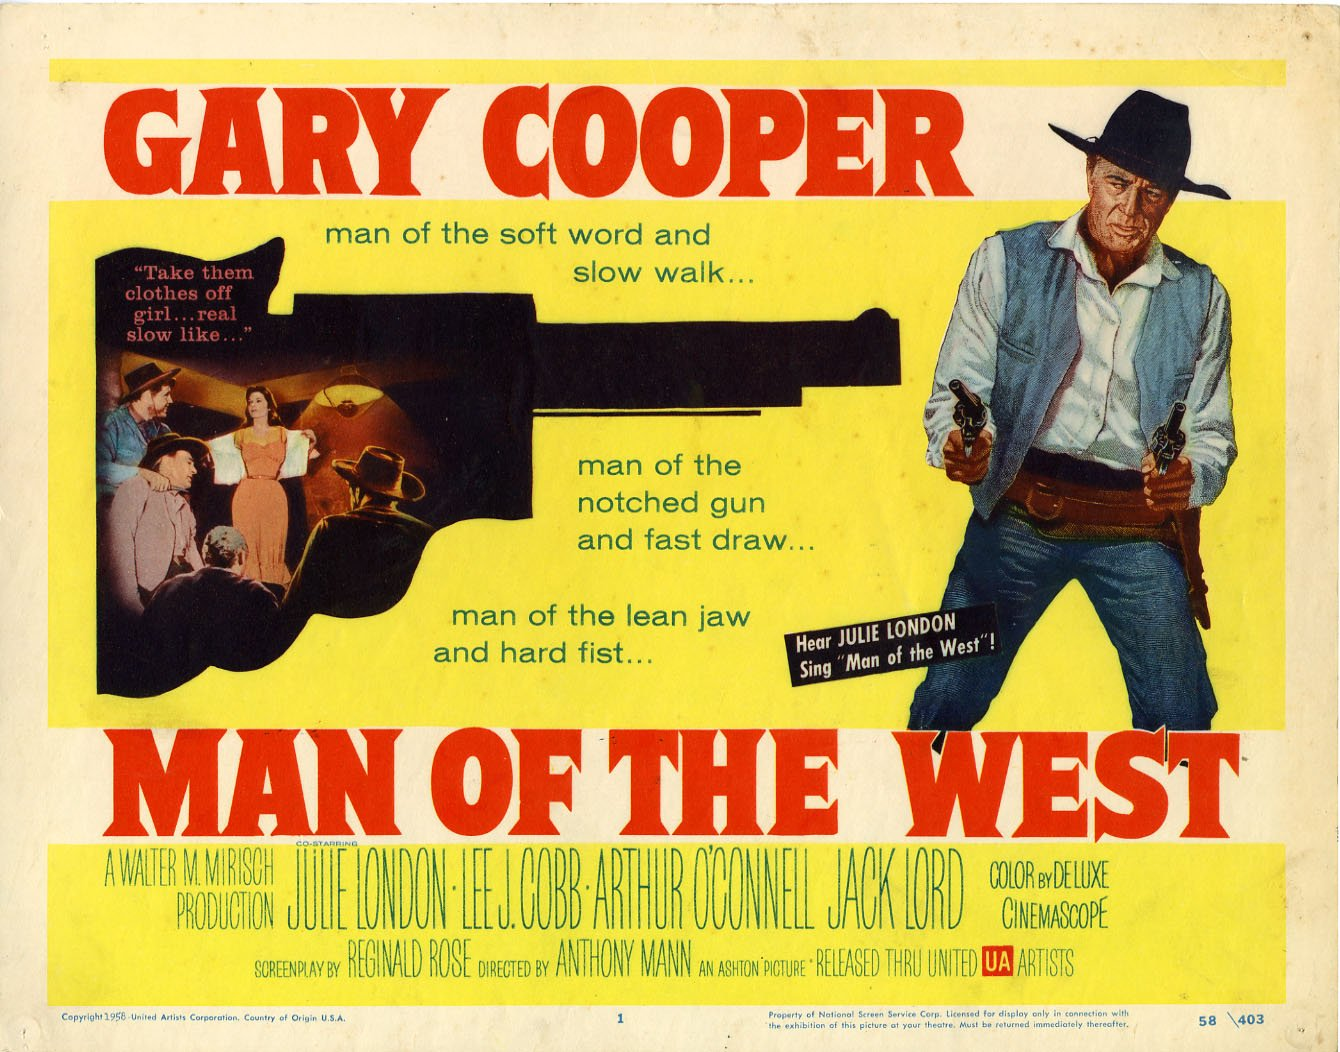 Gary Cooper, Julie London, and Lee J. Cobb star in the 1958 western directed by Anthony Mann